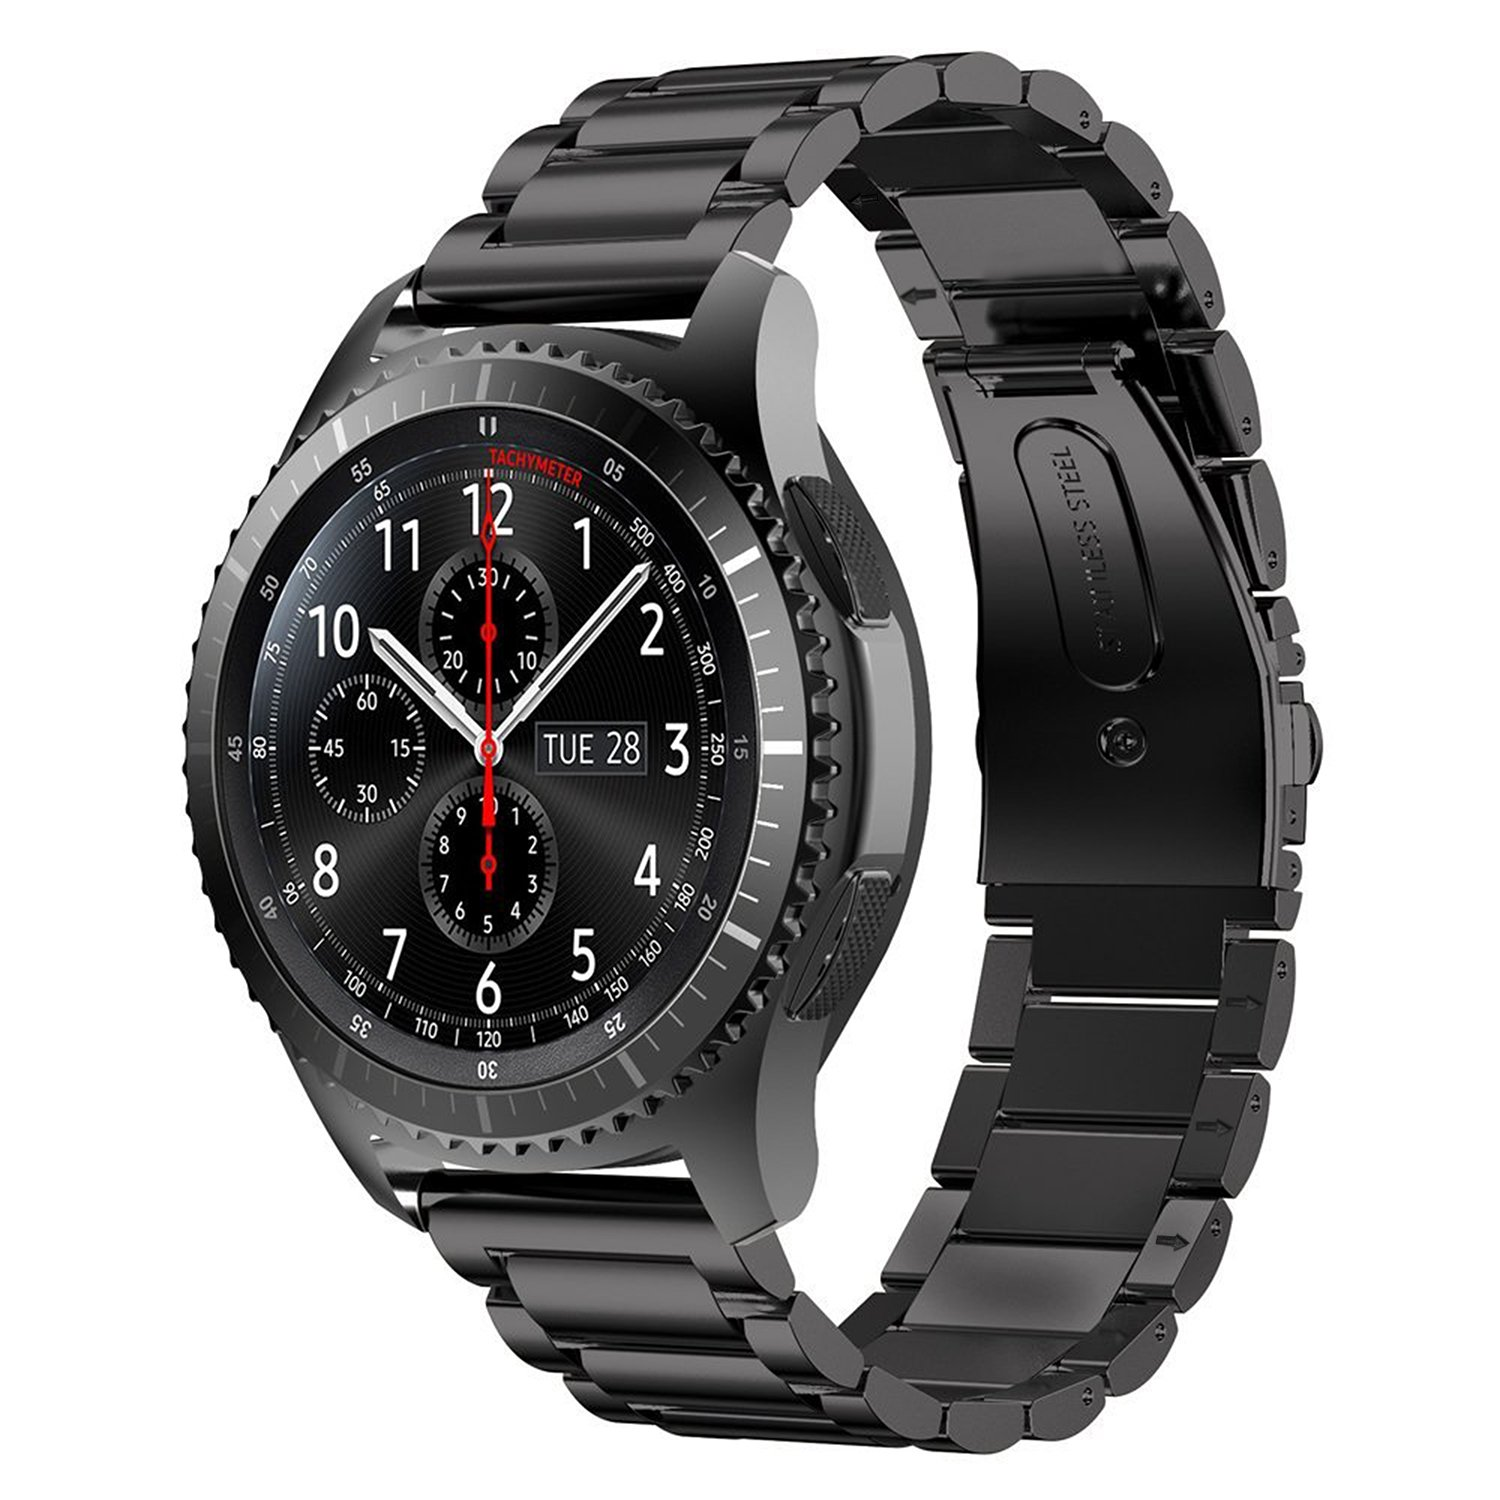 gear to samsung watches classic us enhanced lte brings capability